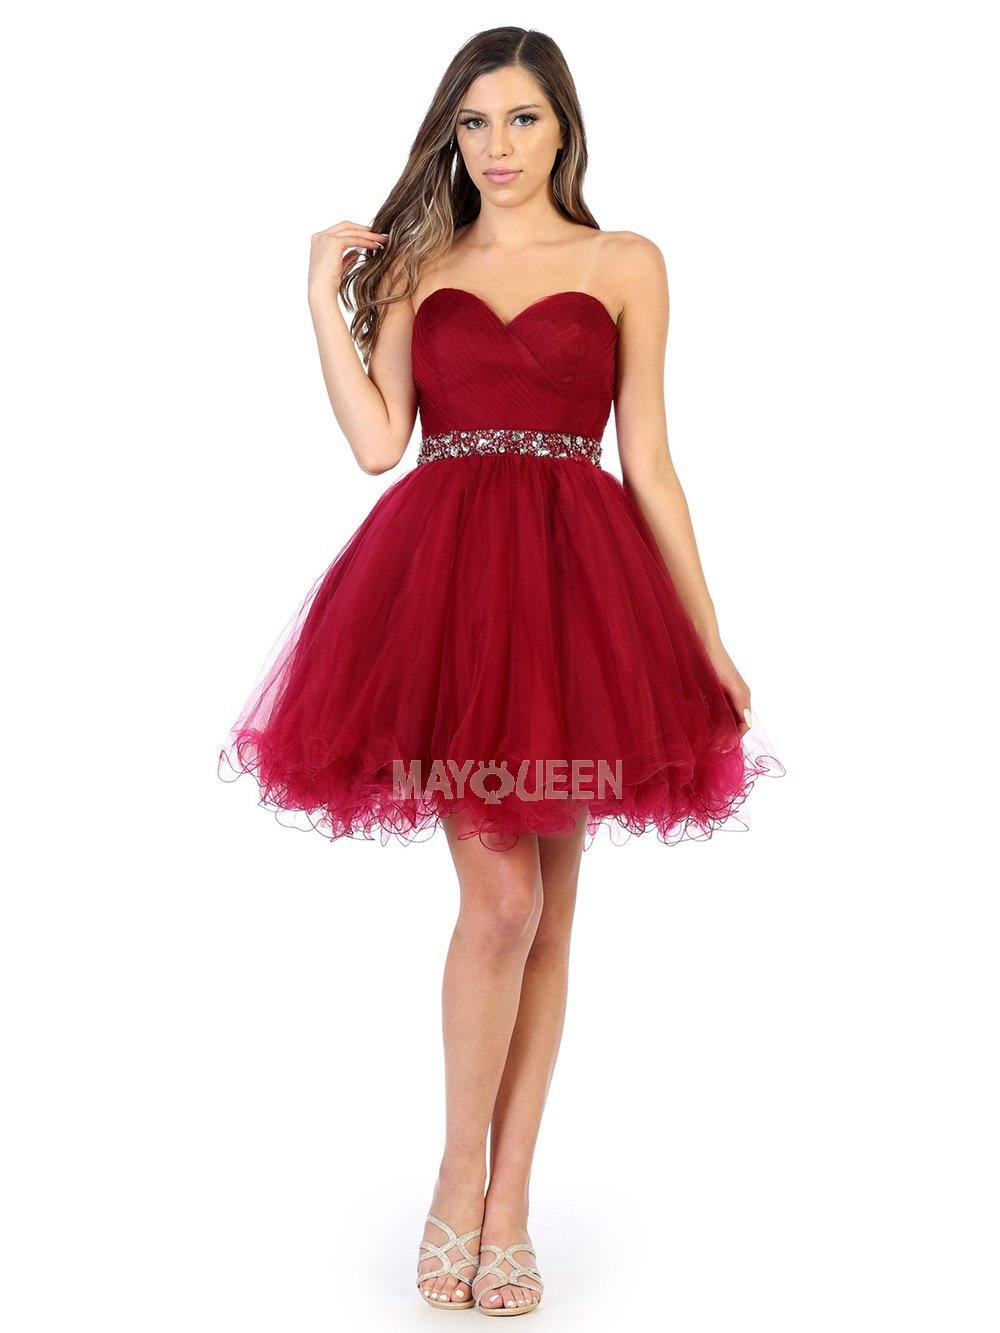 Strapless Short Dress Homecoming - The Dress Outlet Burgundy